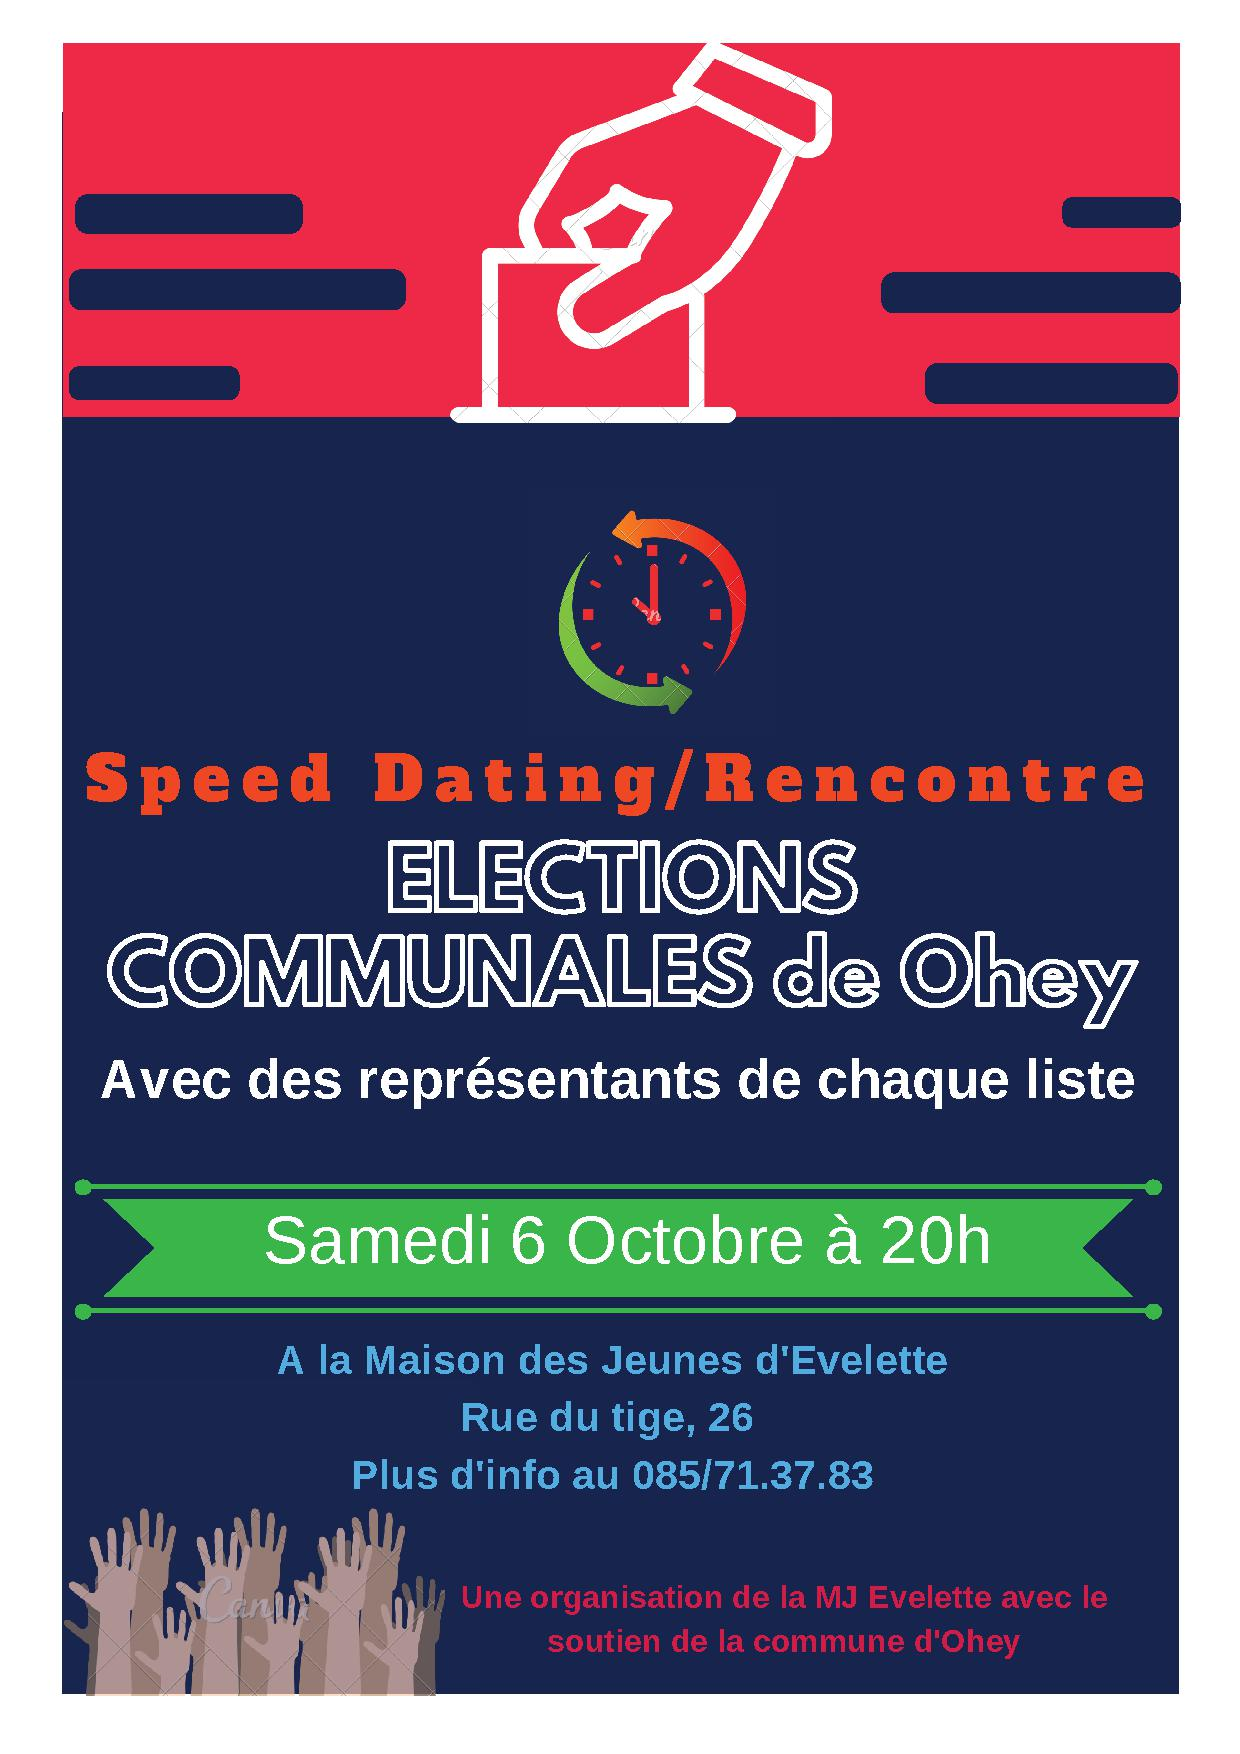 Comment organiser une soiree speed dating